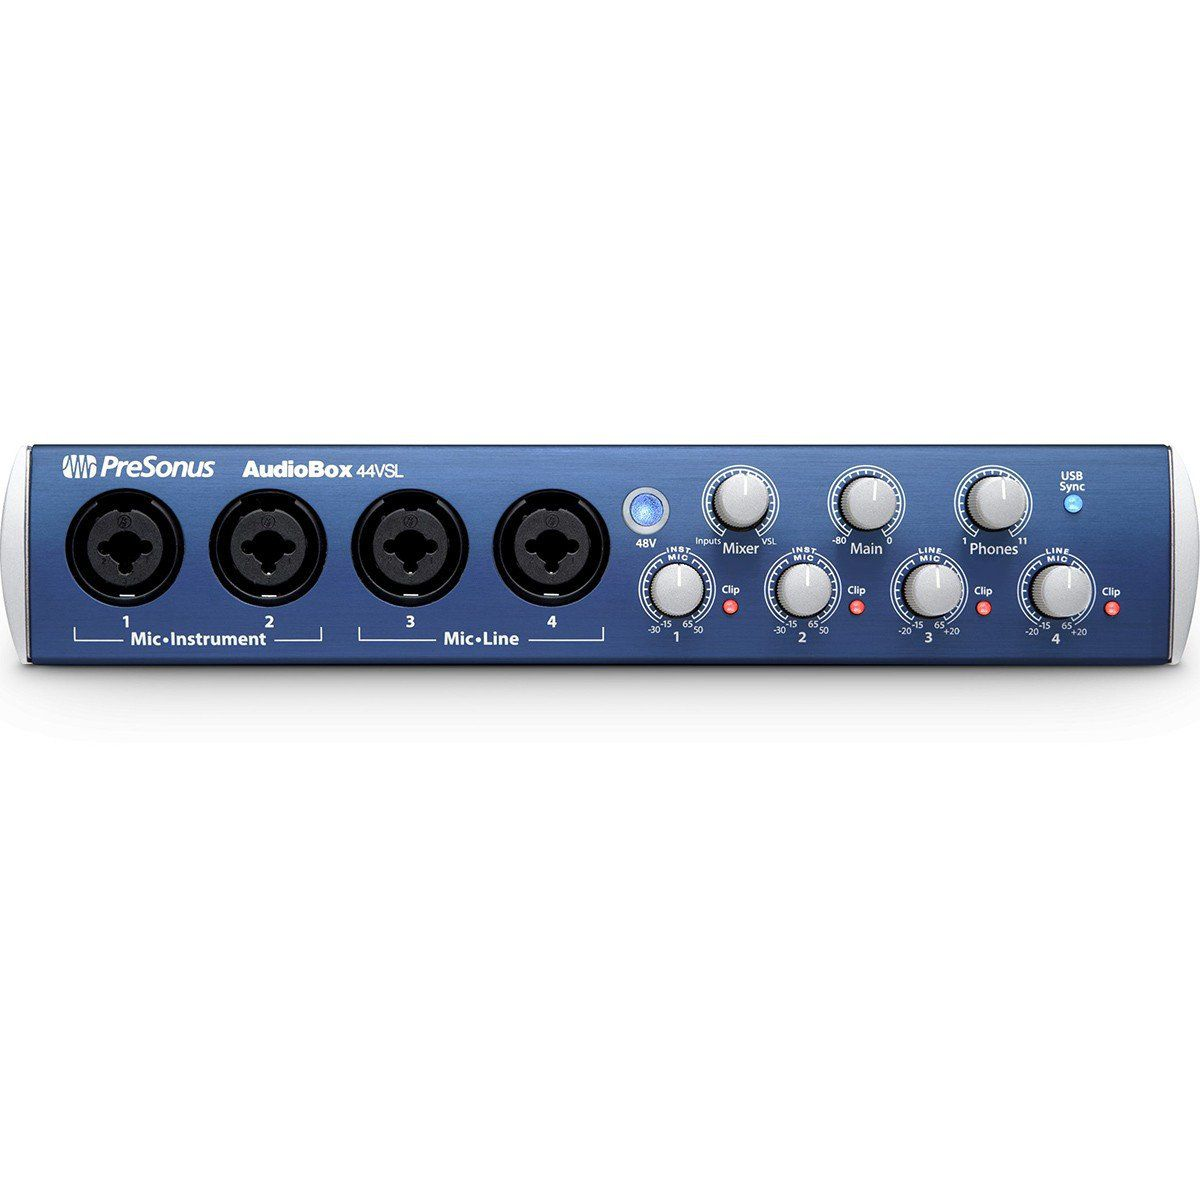 Presonus AudioBox 44VSL Interface de Áudio Audio Box 44 VSL Usb 4x6 Pc Mac Midi